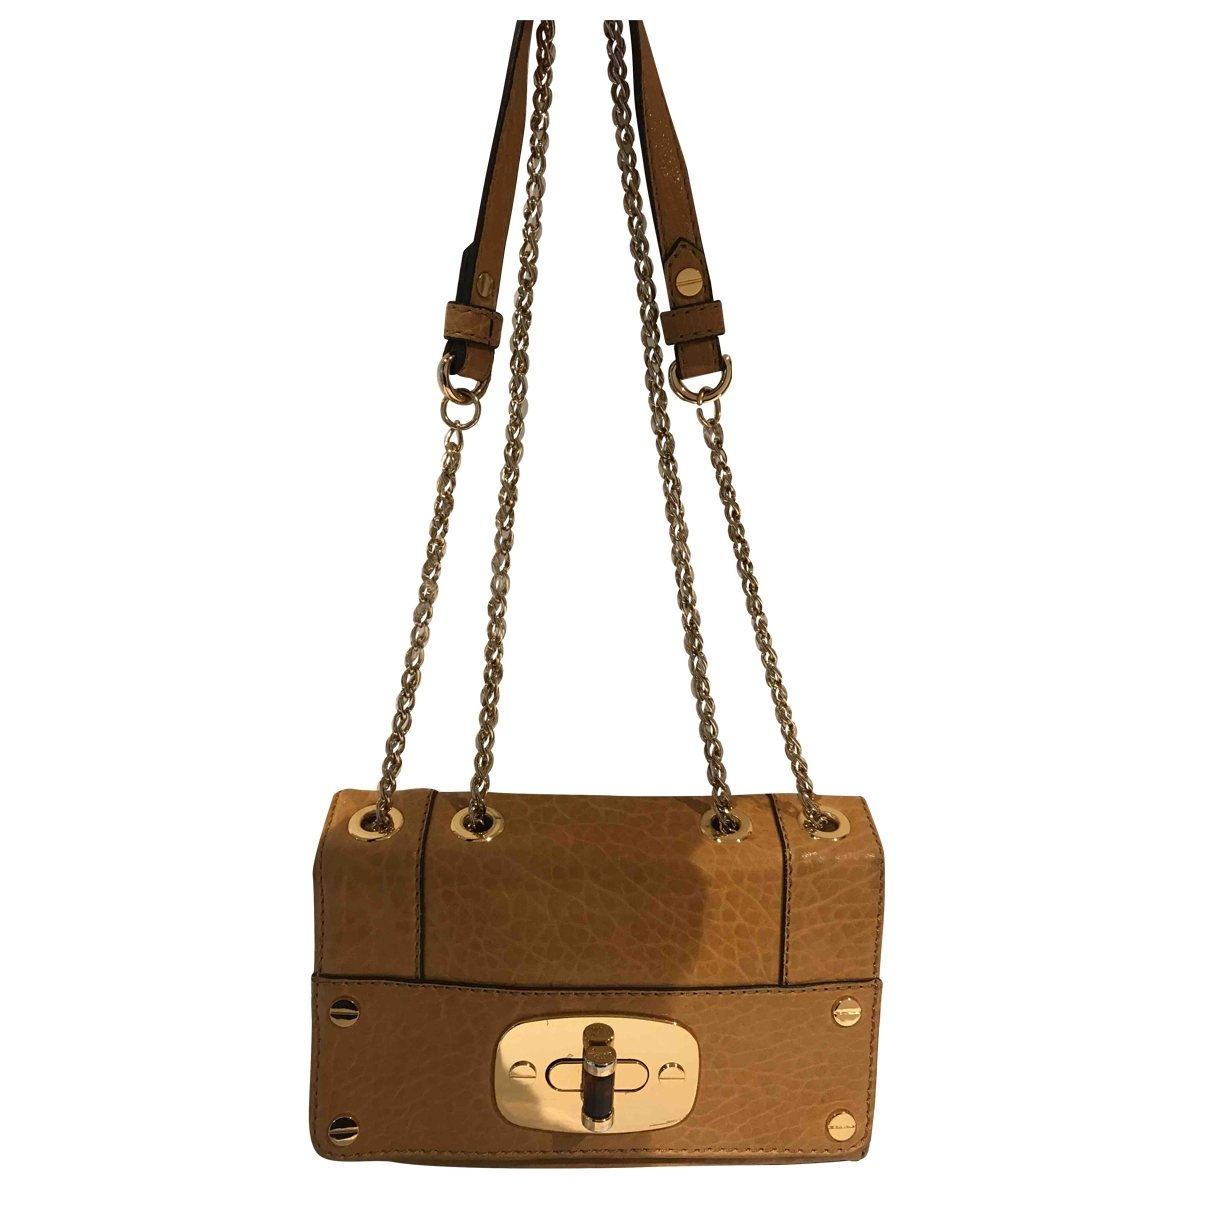 Milly \N Yellow Leather handbag for Women \N